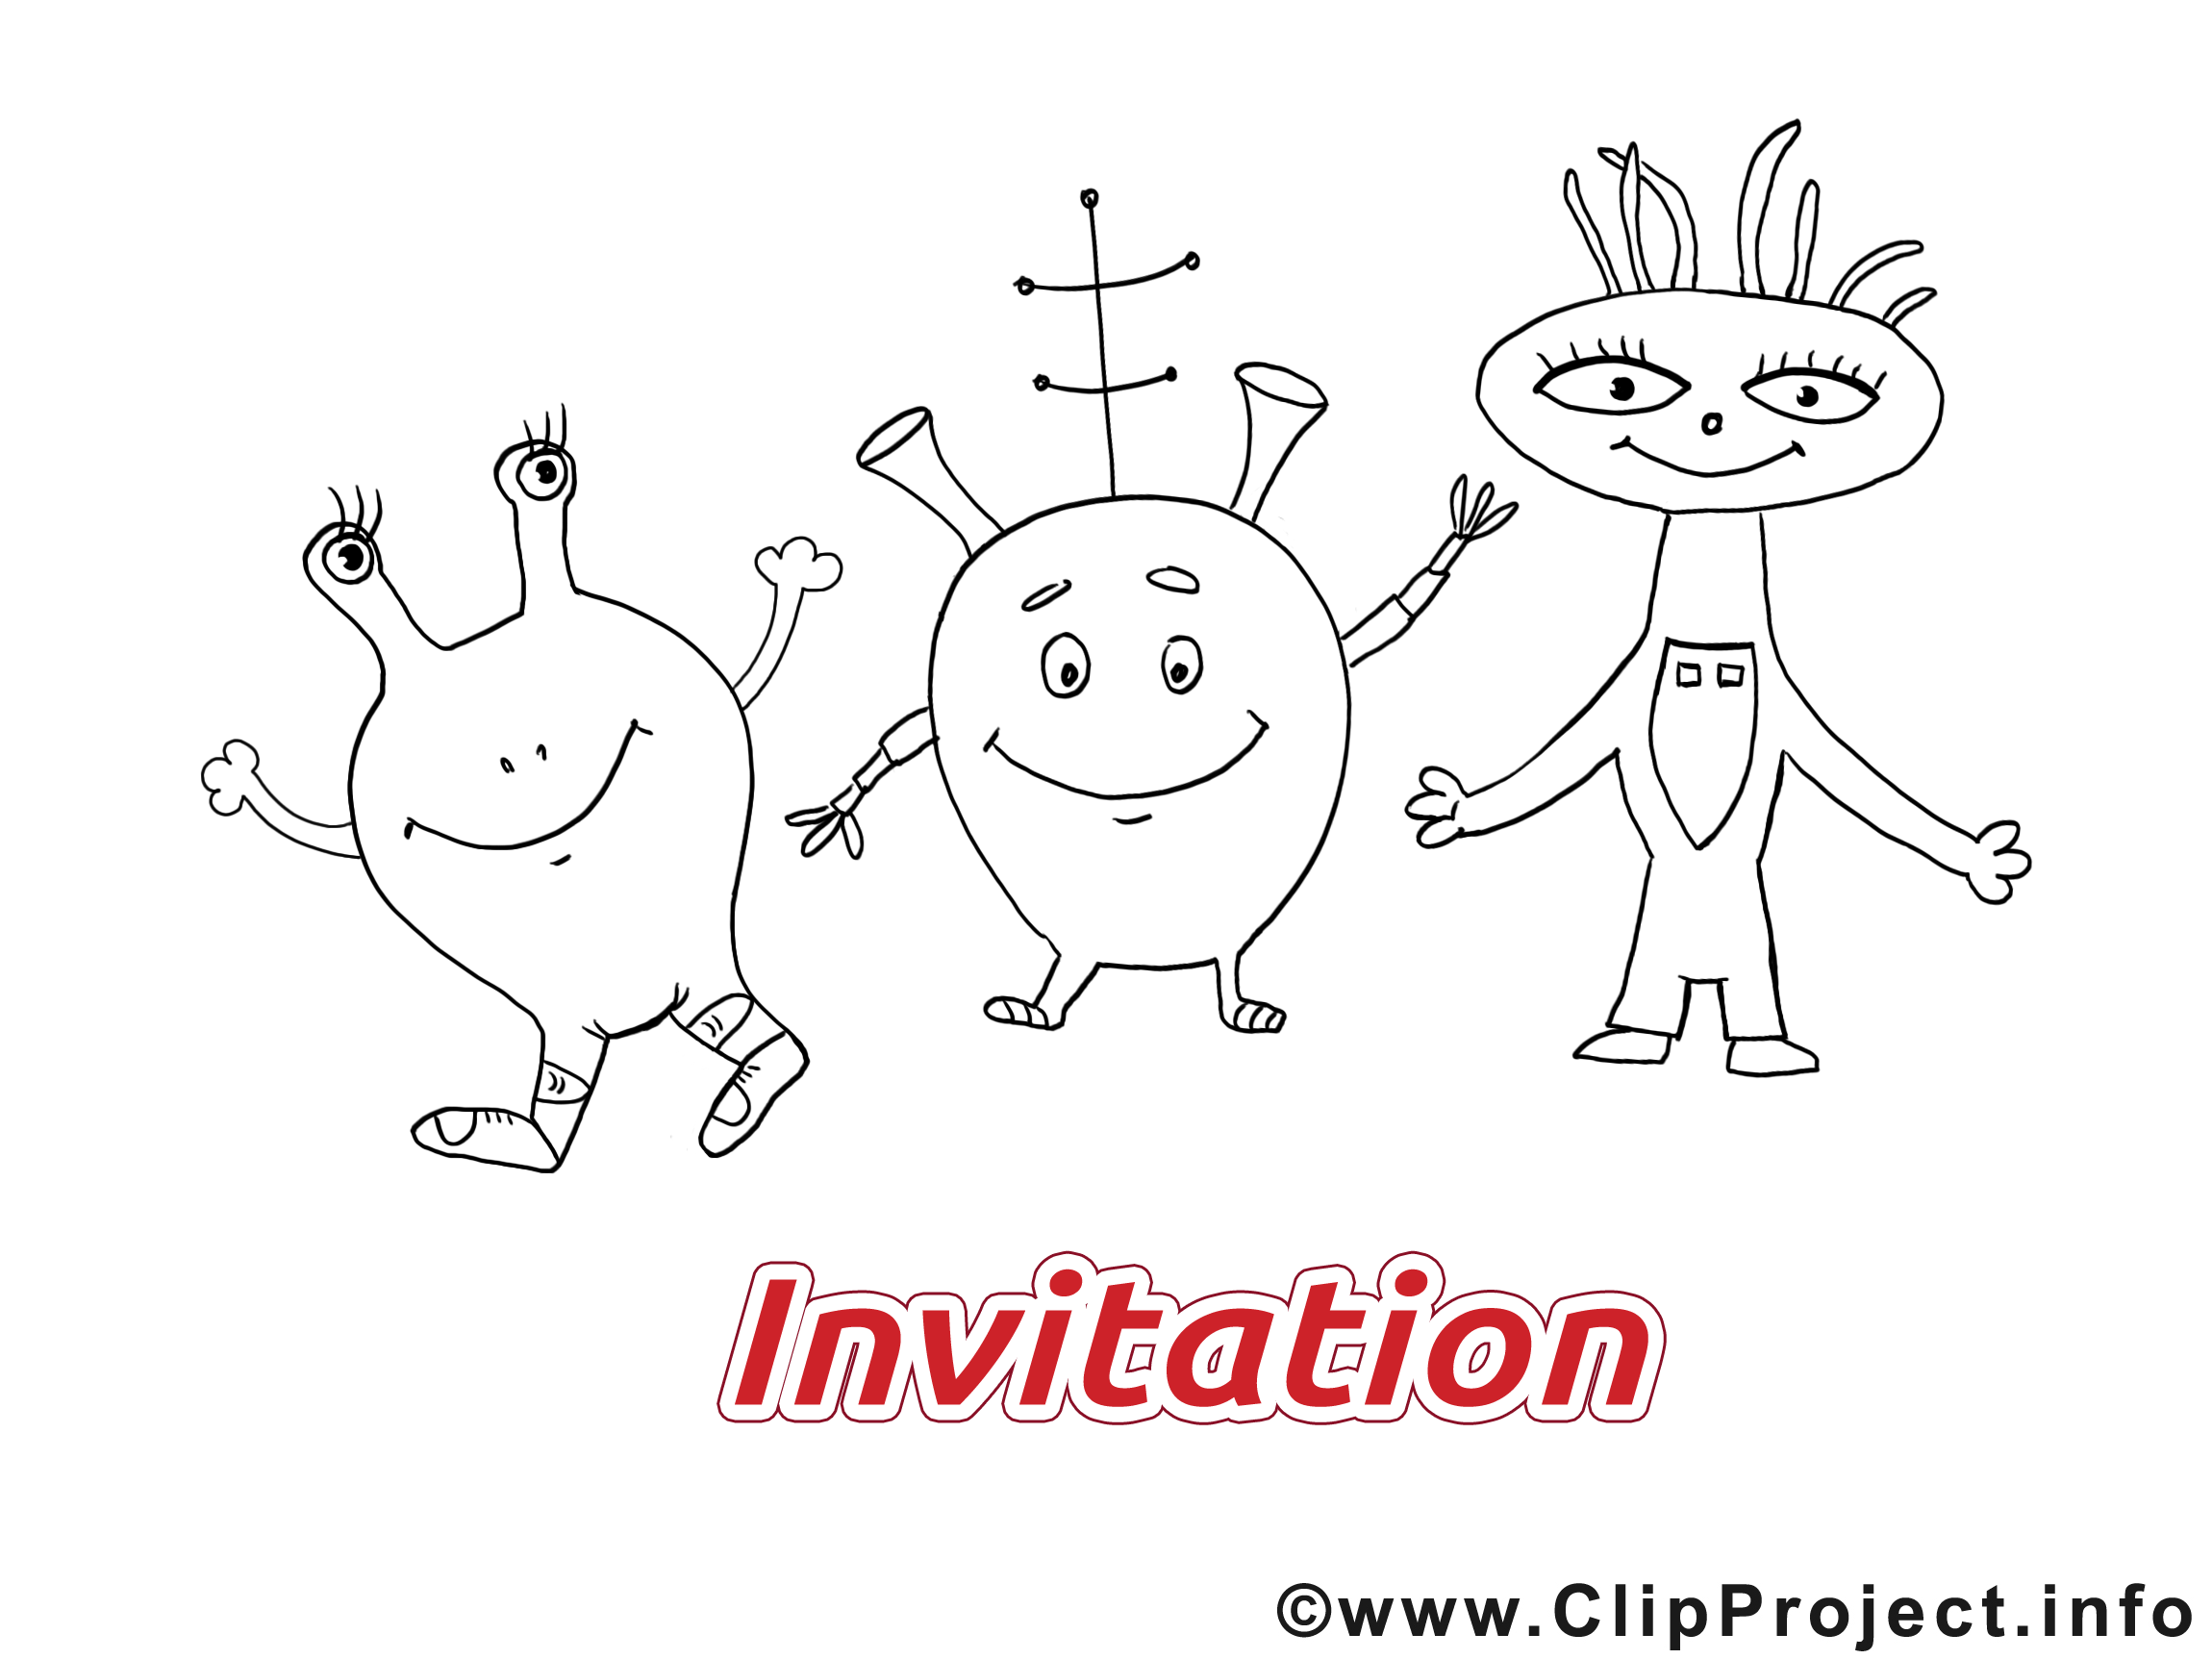 Coloriage extraterrestres - Invitation images cliparts